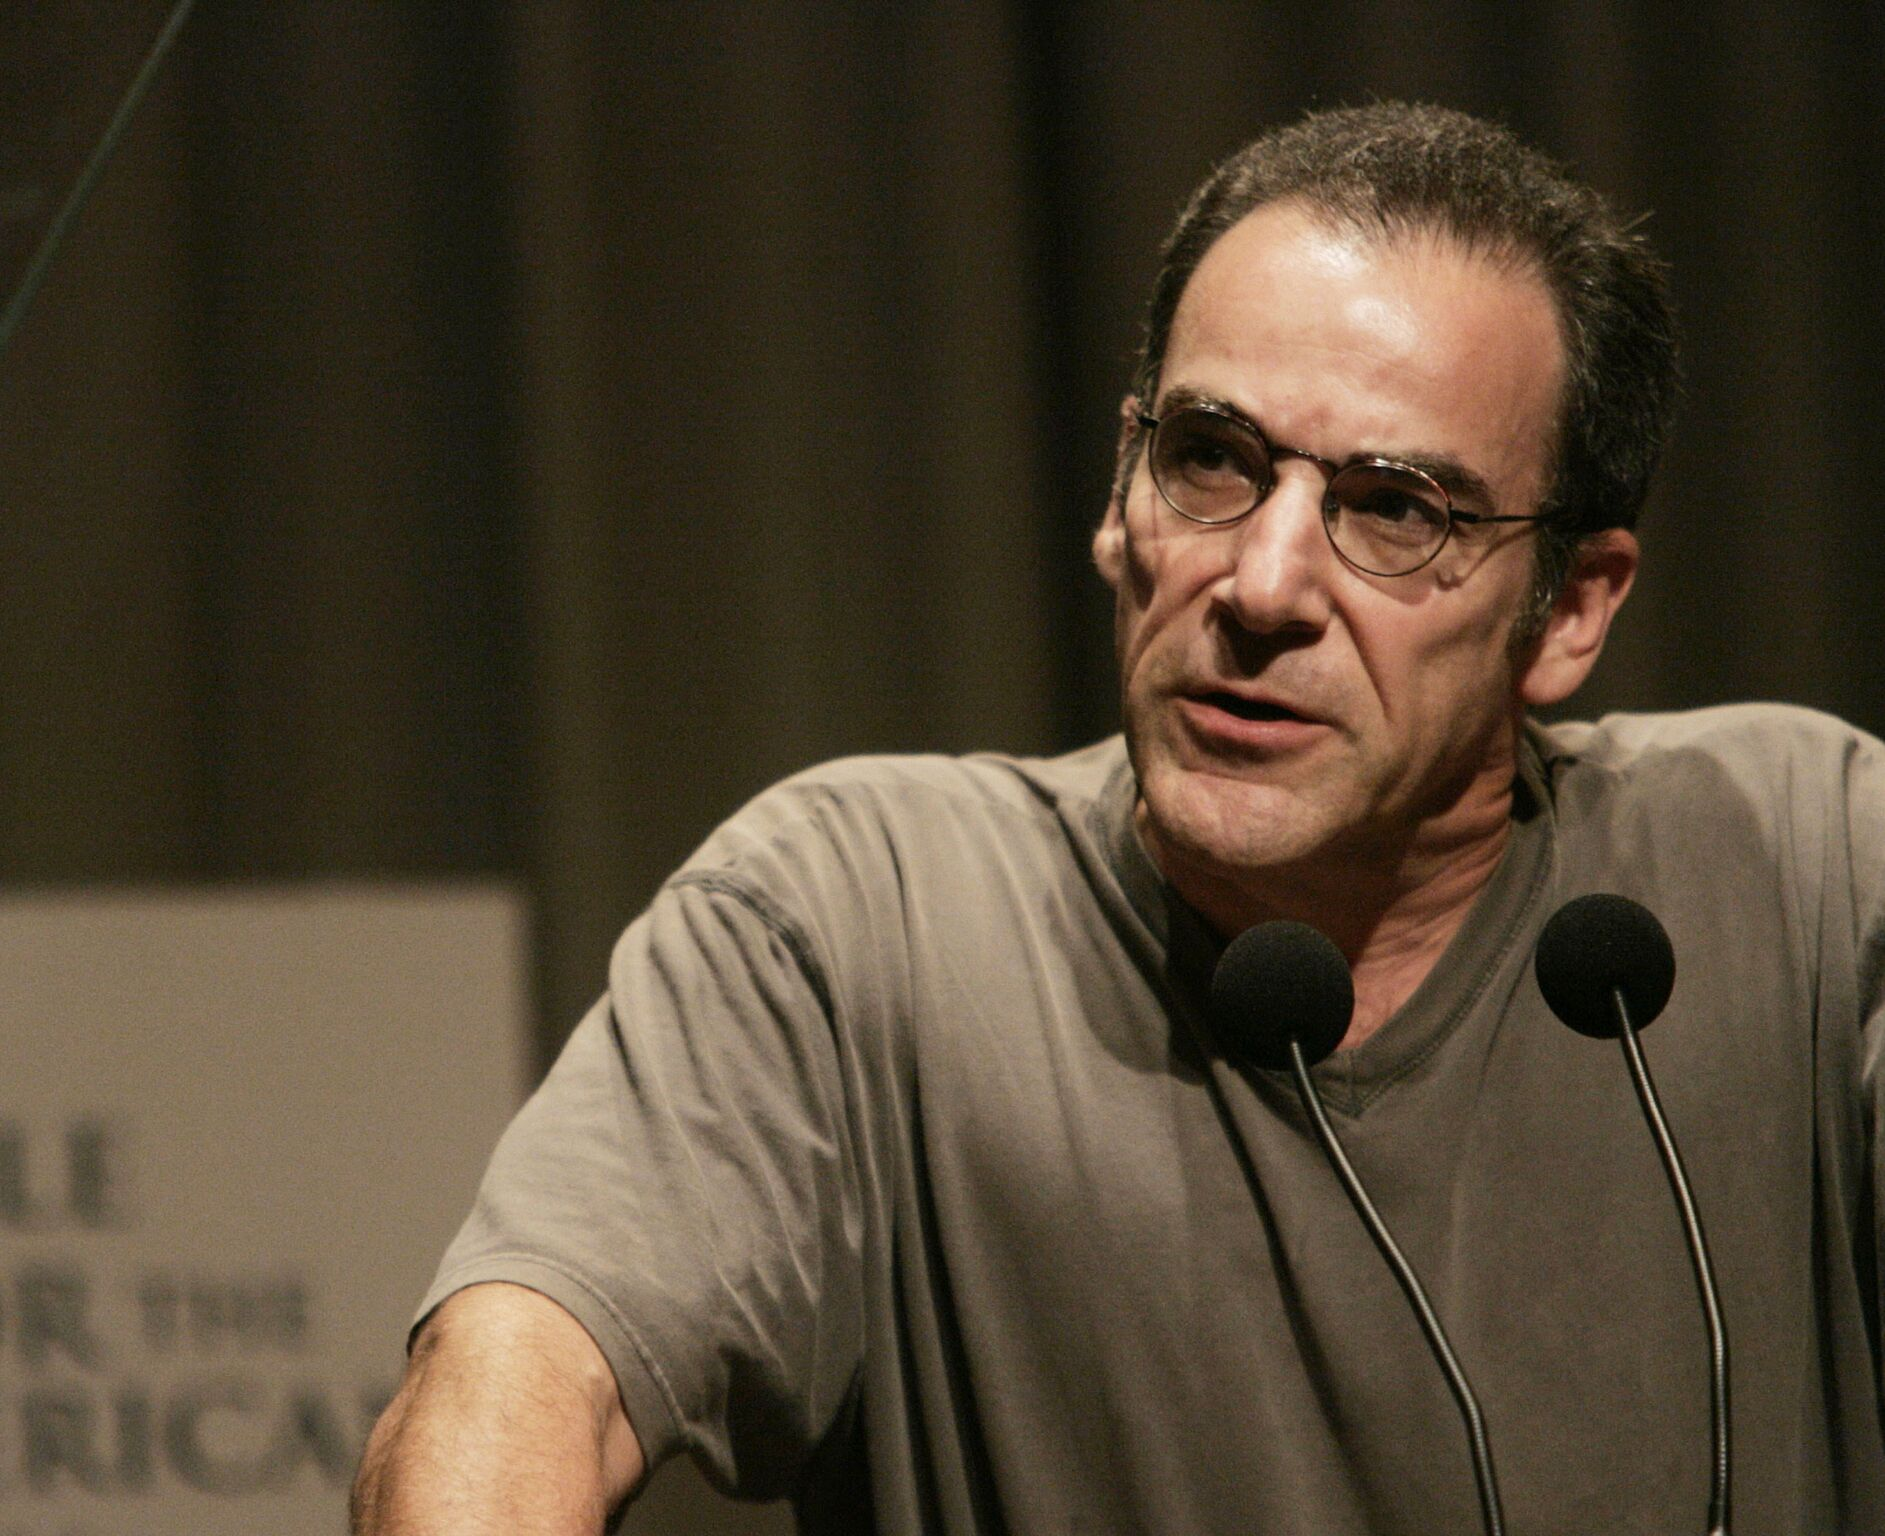 Mandy Patinkin attends a reading of the U.S. Constitution at Cooper Union for the People For the American Way Foundation  | Getty Images